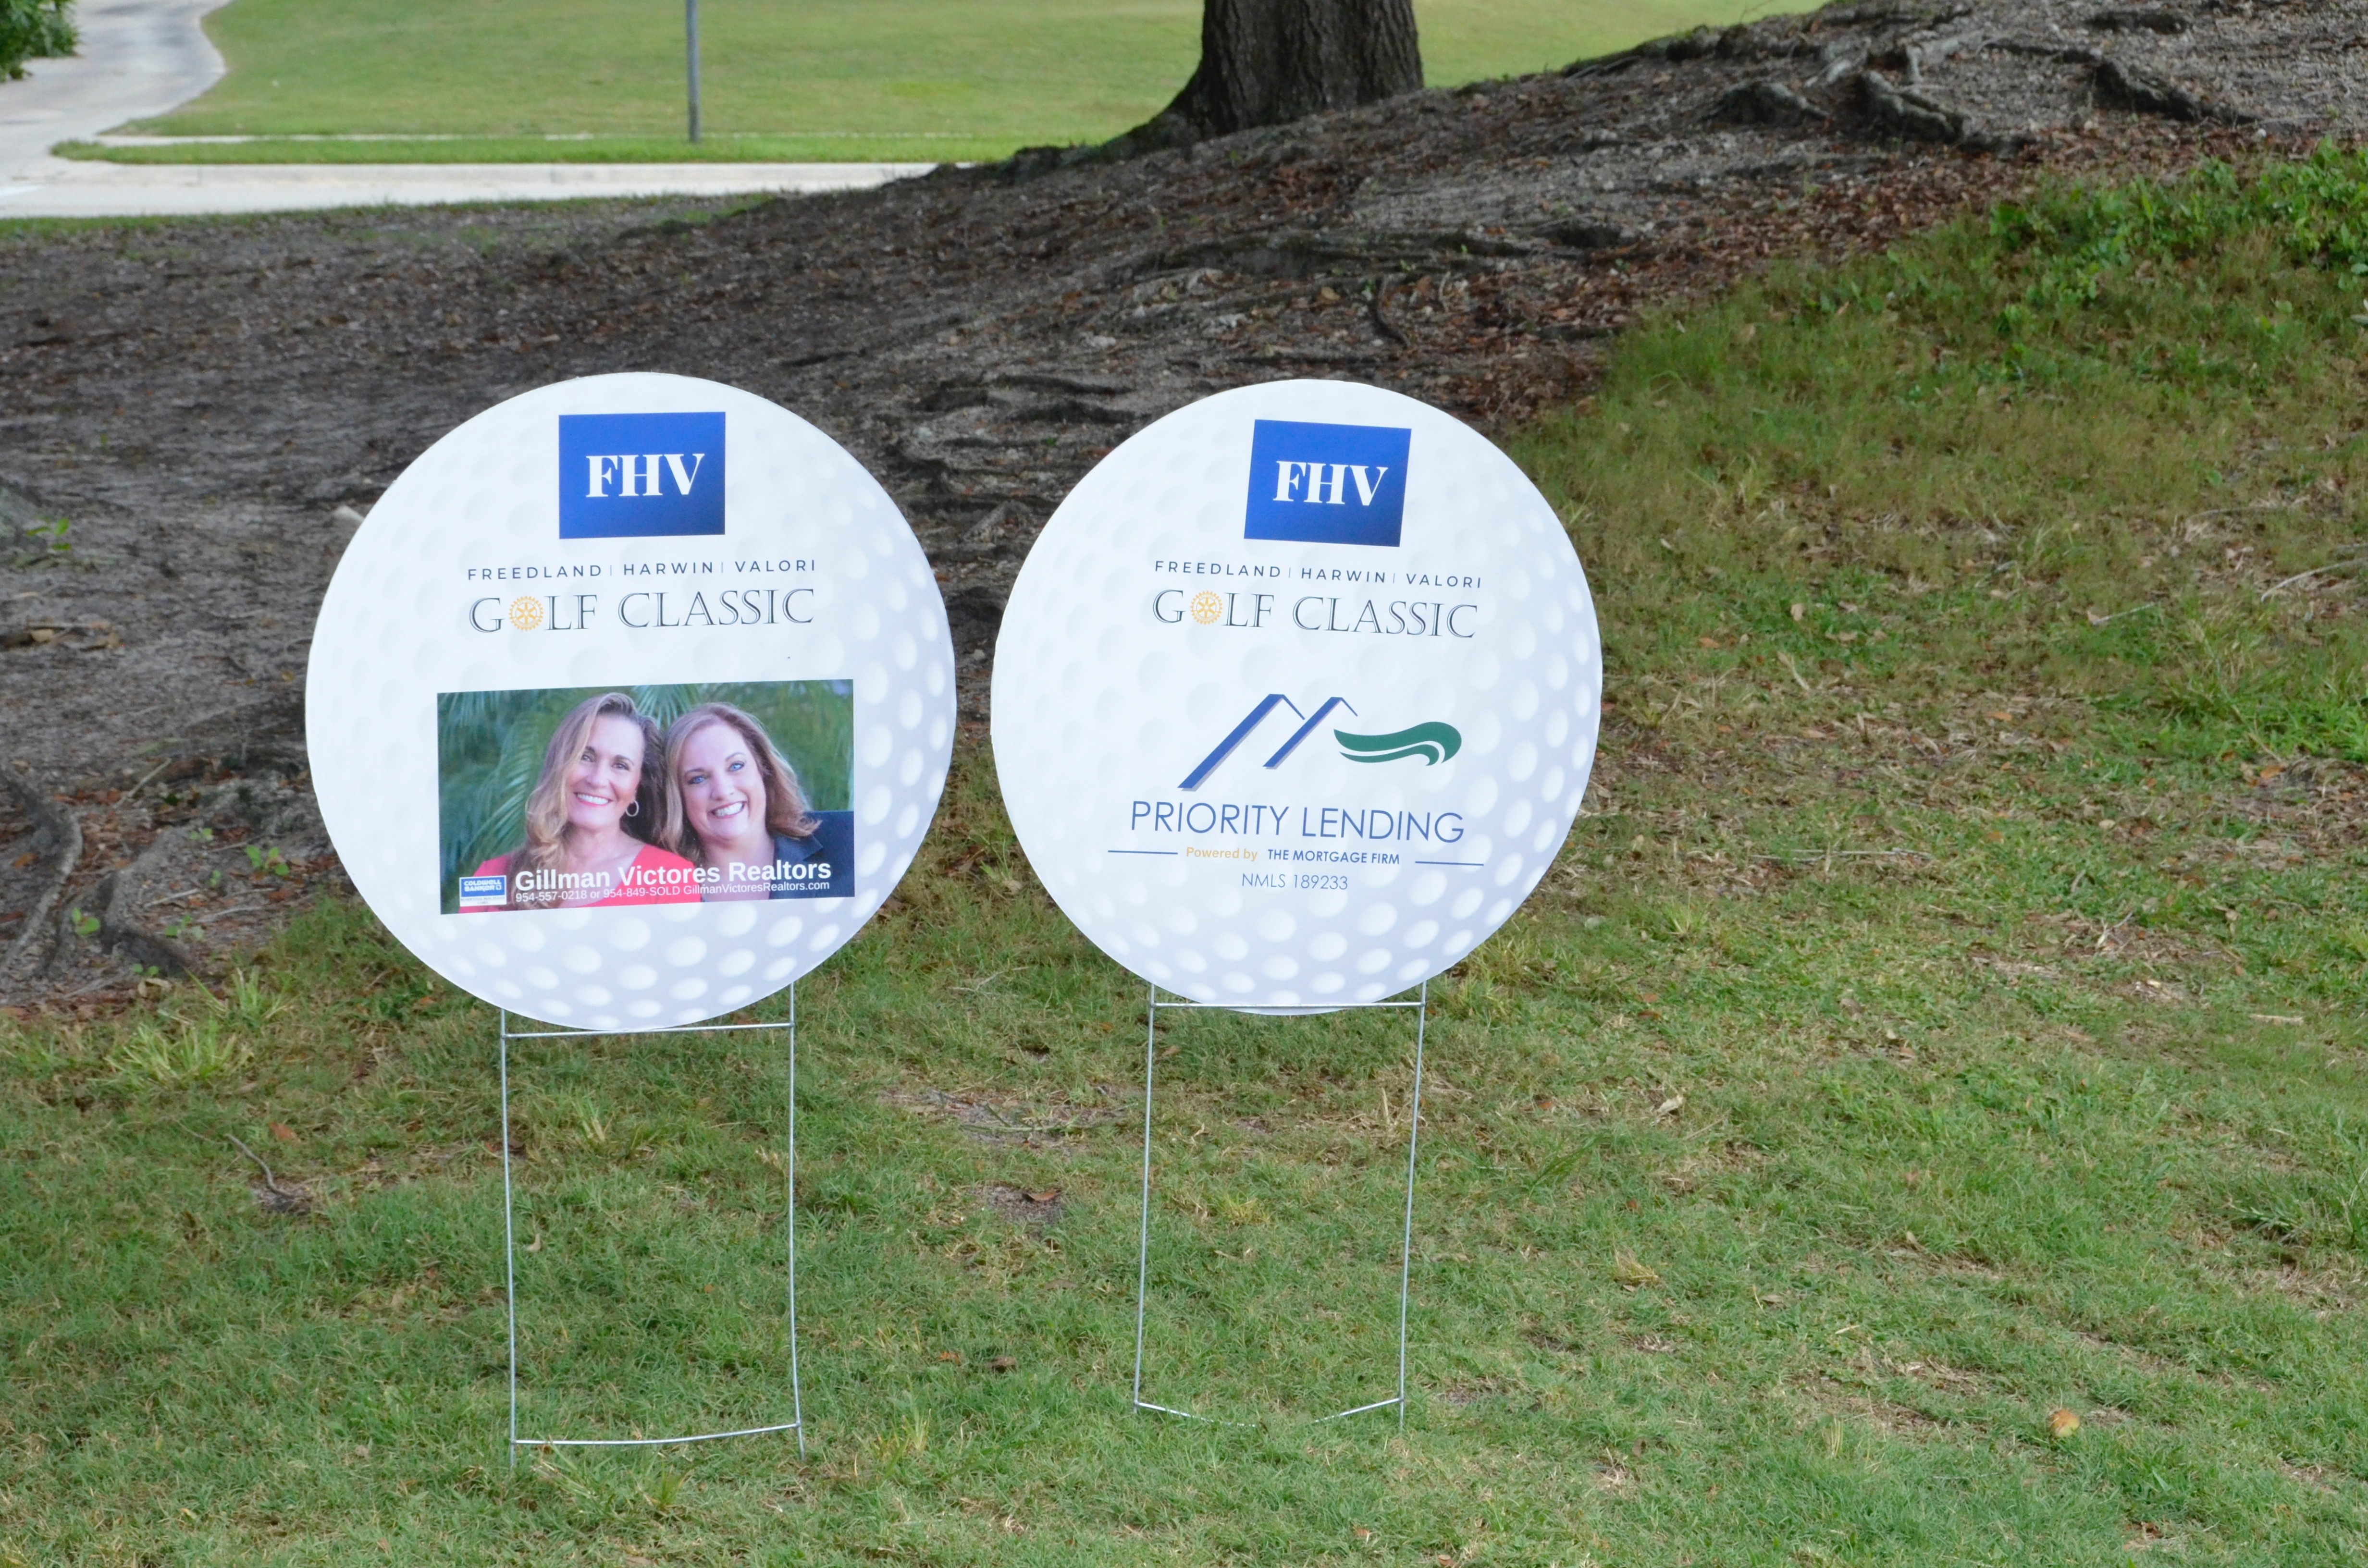 33rd Annual Rotary Golf Classic Sponsored by FHVLEGAL.COM gallery image #79